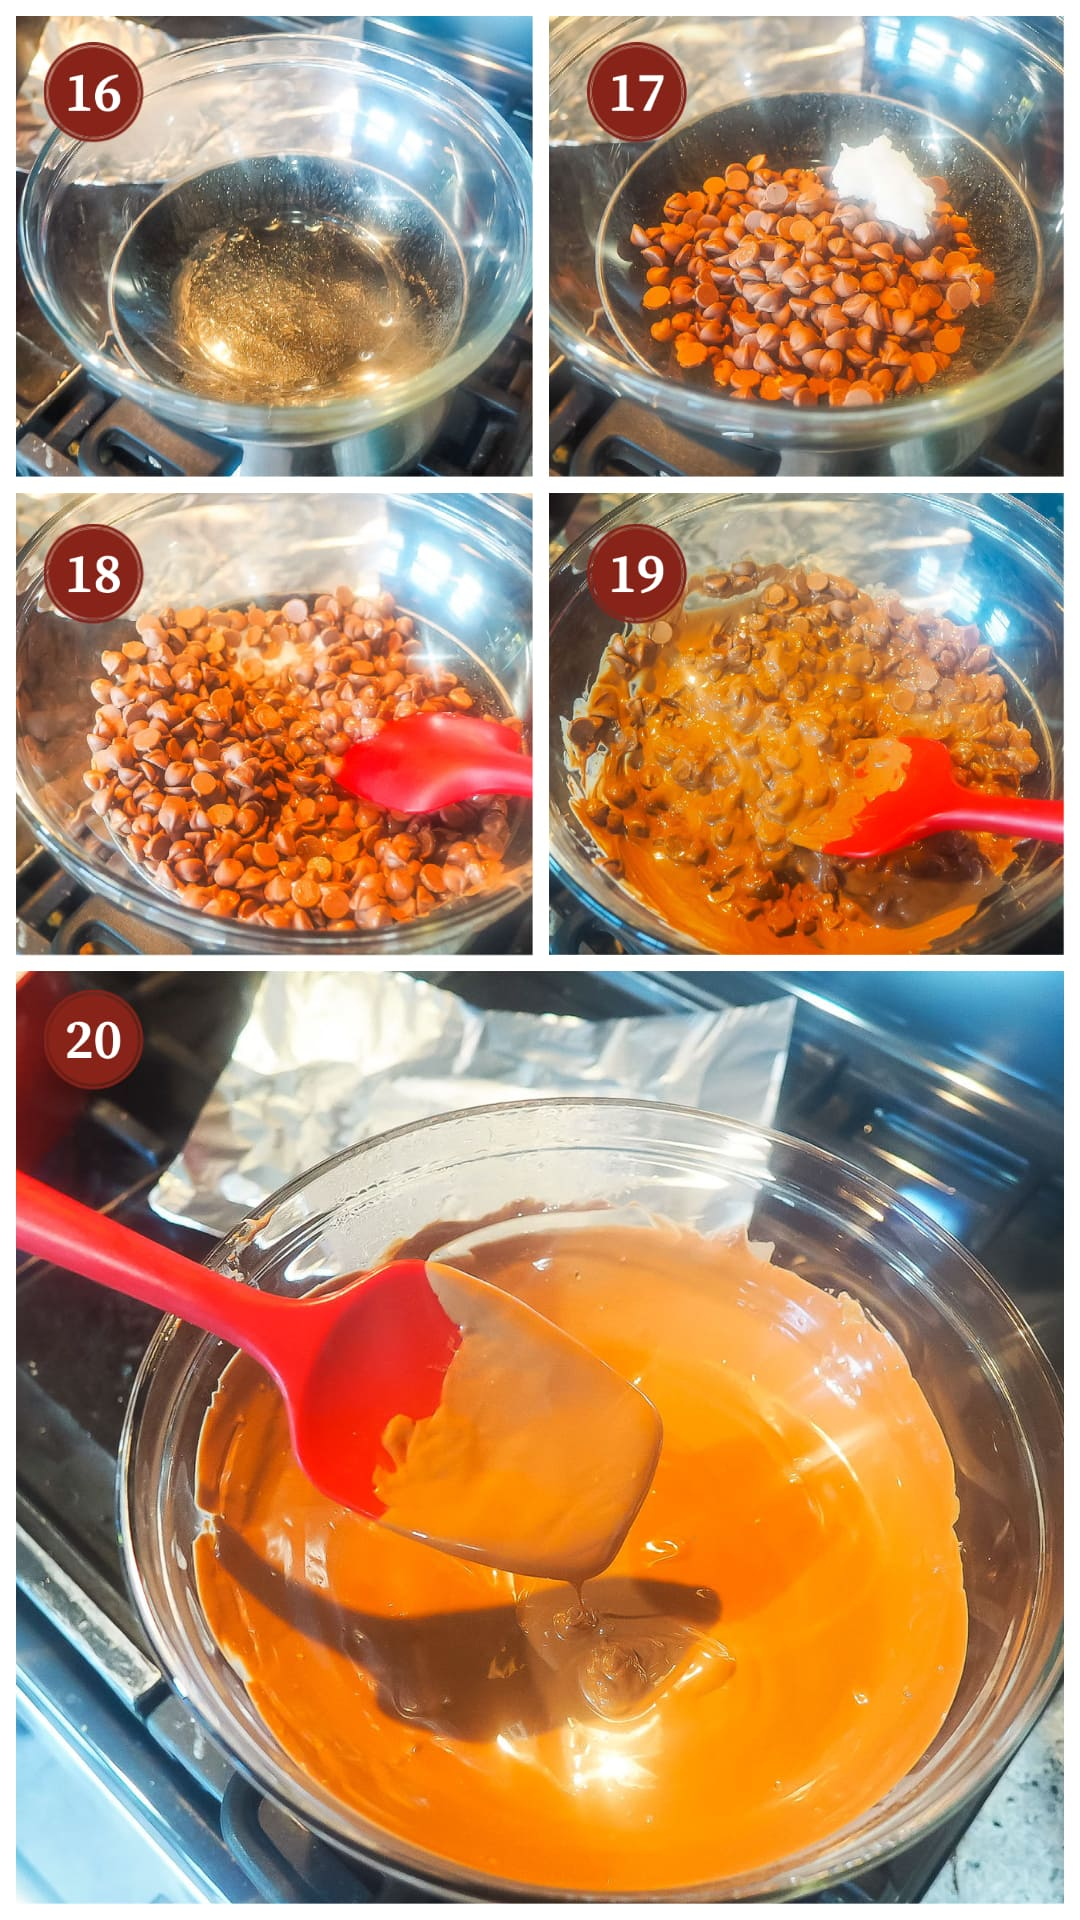 A process collage of how to melt chocolate chips over a double boiler.